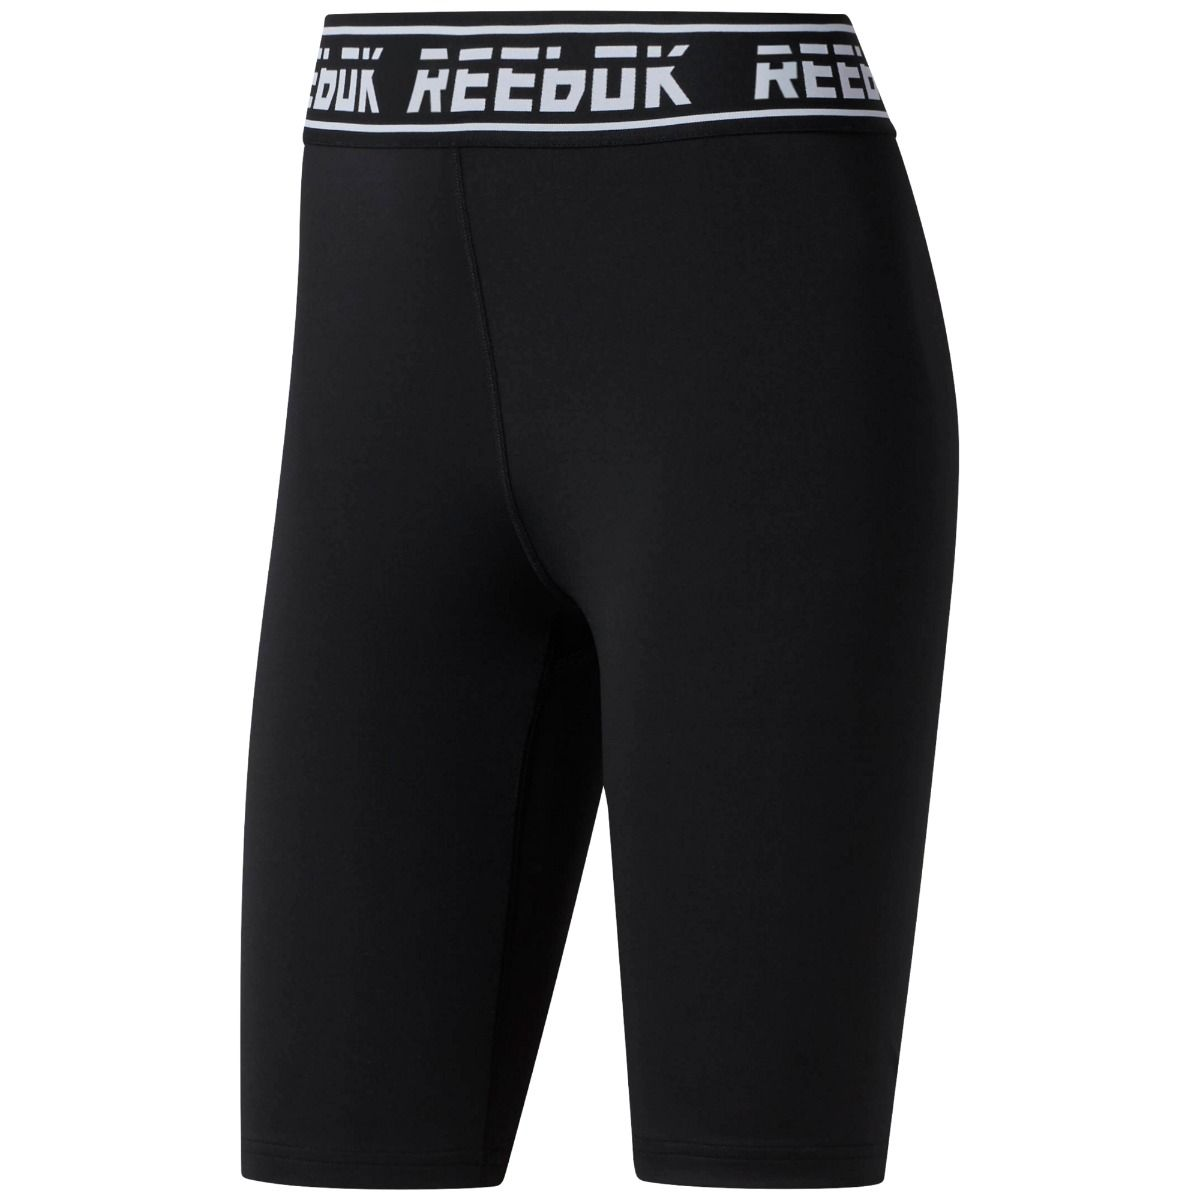 55f7a3a9 Reebok Workout Ready Meet You There Fitted Shorts - Sort | X-life.no